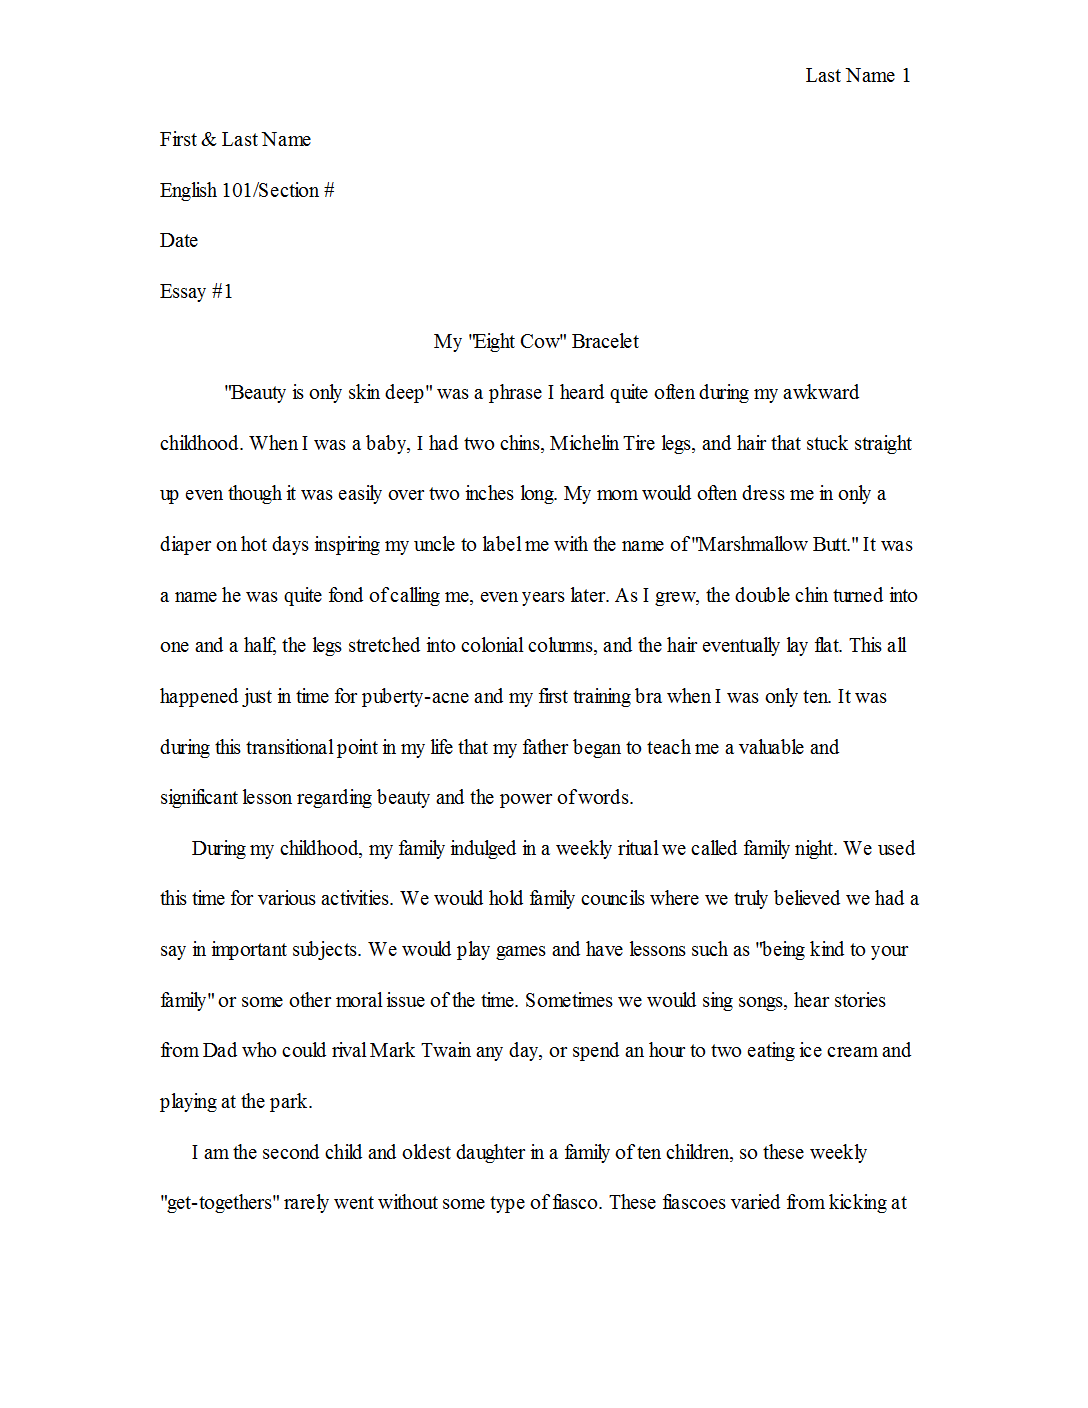 Story essay sample